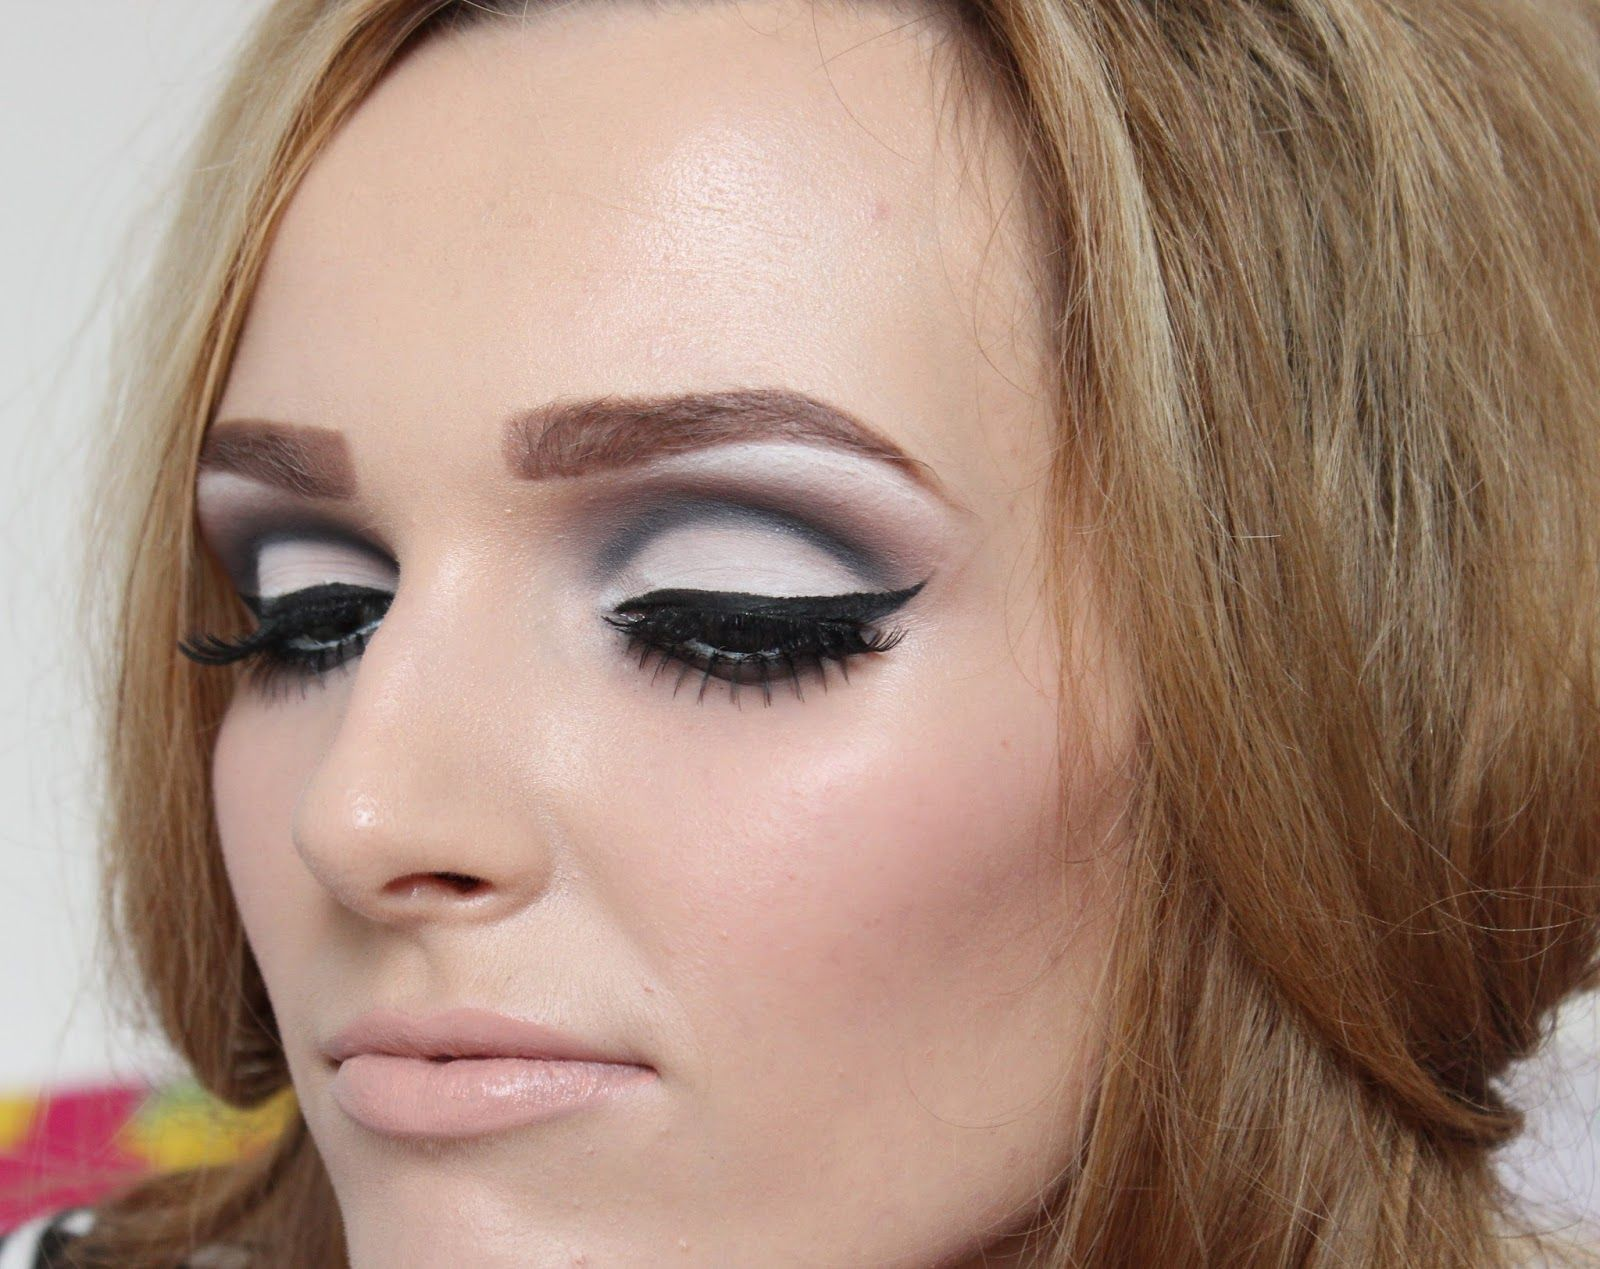 Coleyyyful: A Beauty & Fashion Blog: Modern 1960's Makeup